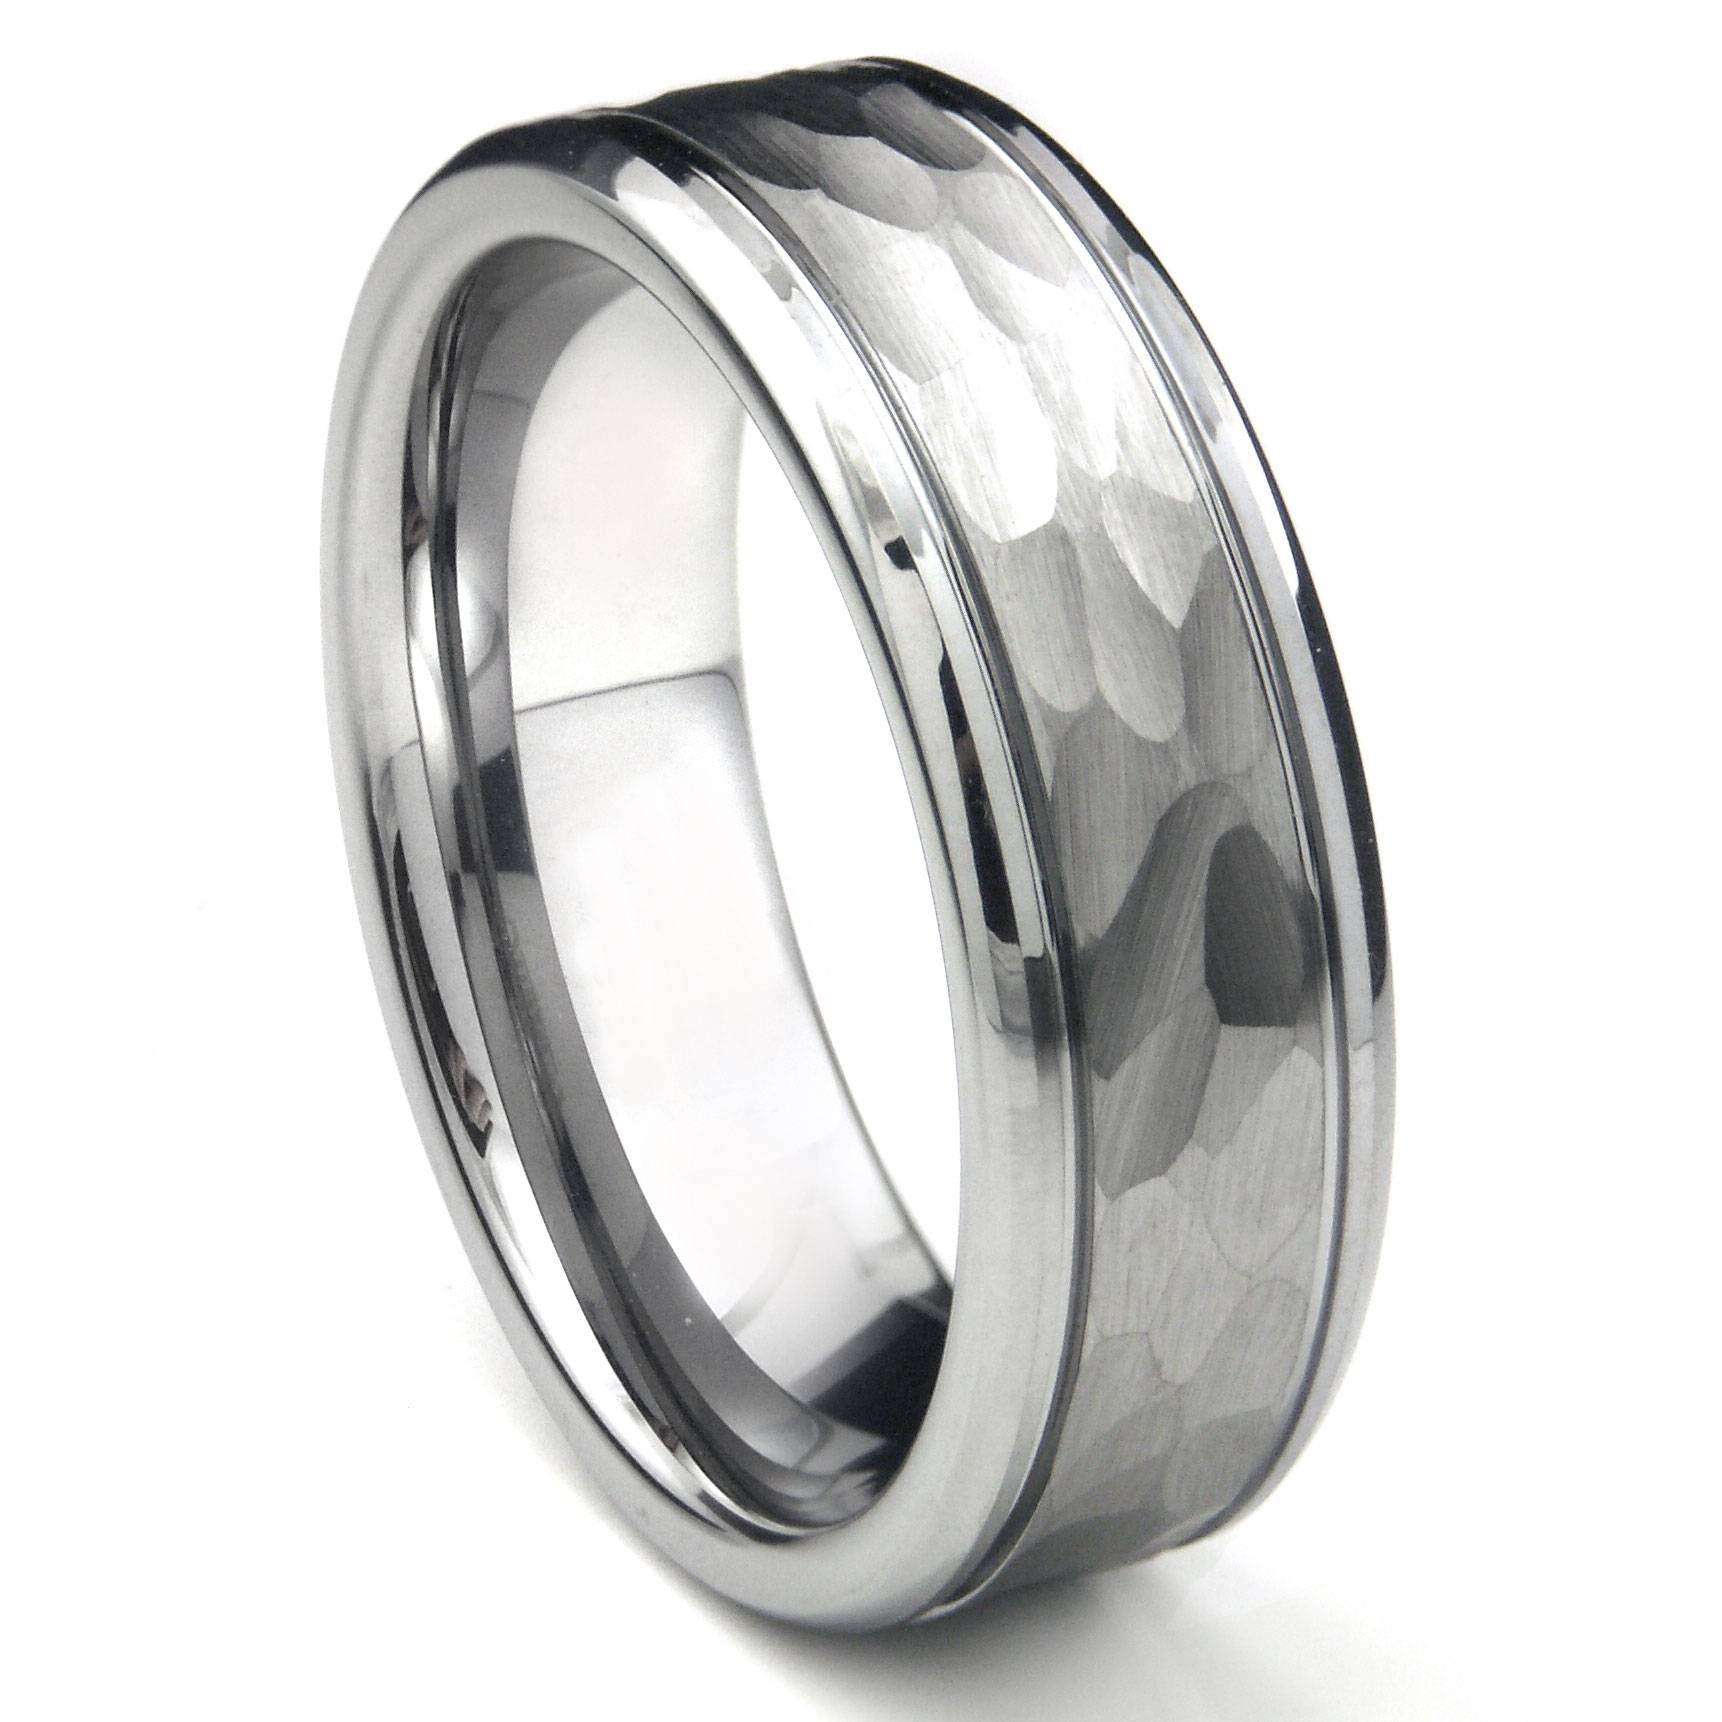 Tungsten Carbide Hammer Finish Wedding Band Ring /w Grooves Intended For Mens Hammered Wedding Bands (View 5 of 15)